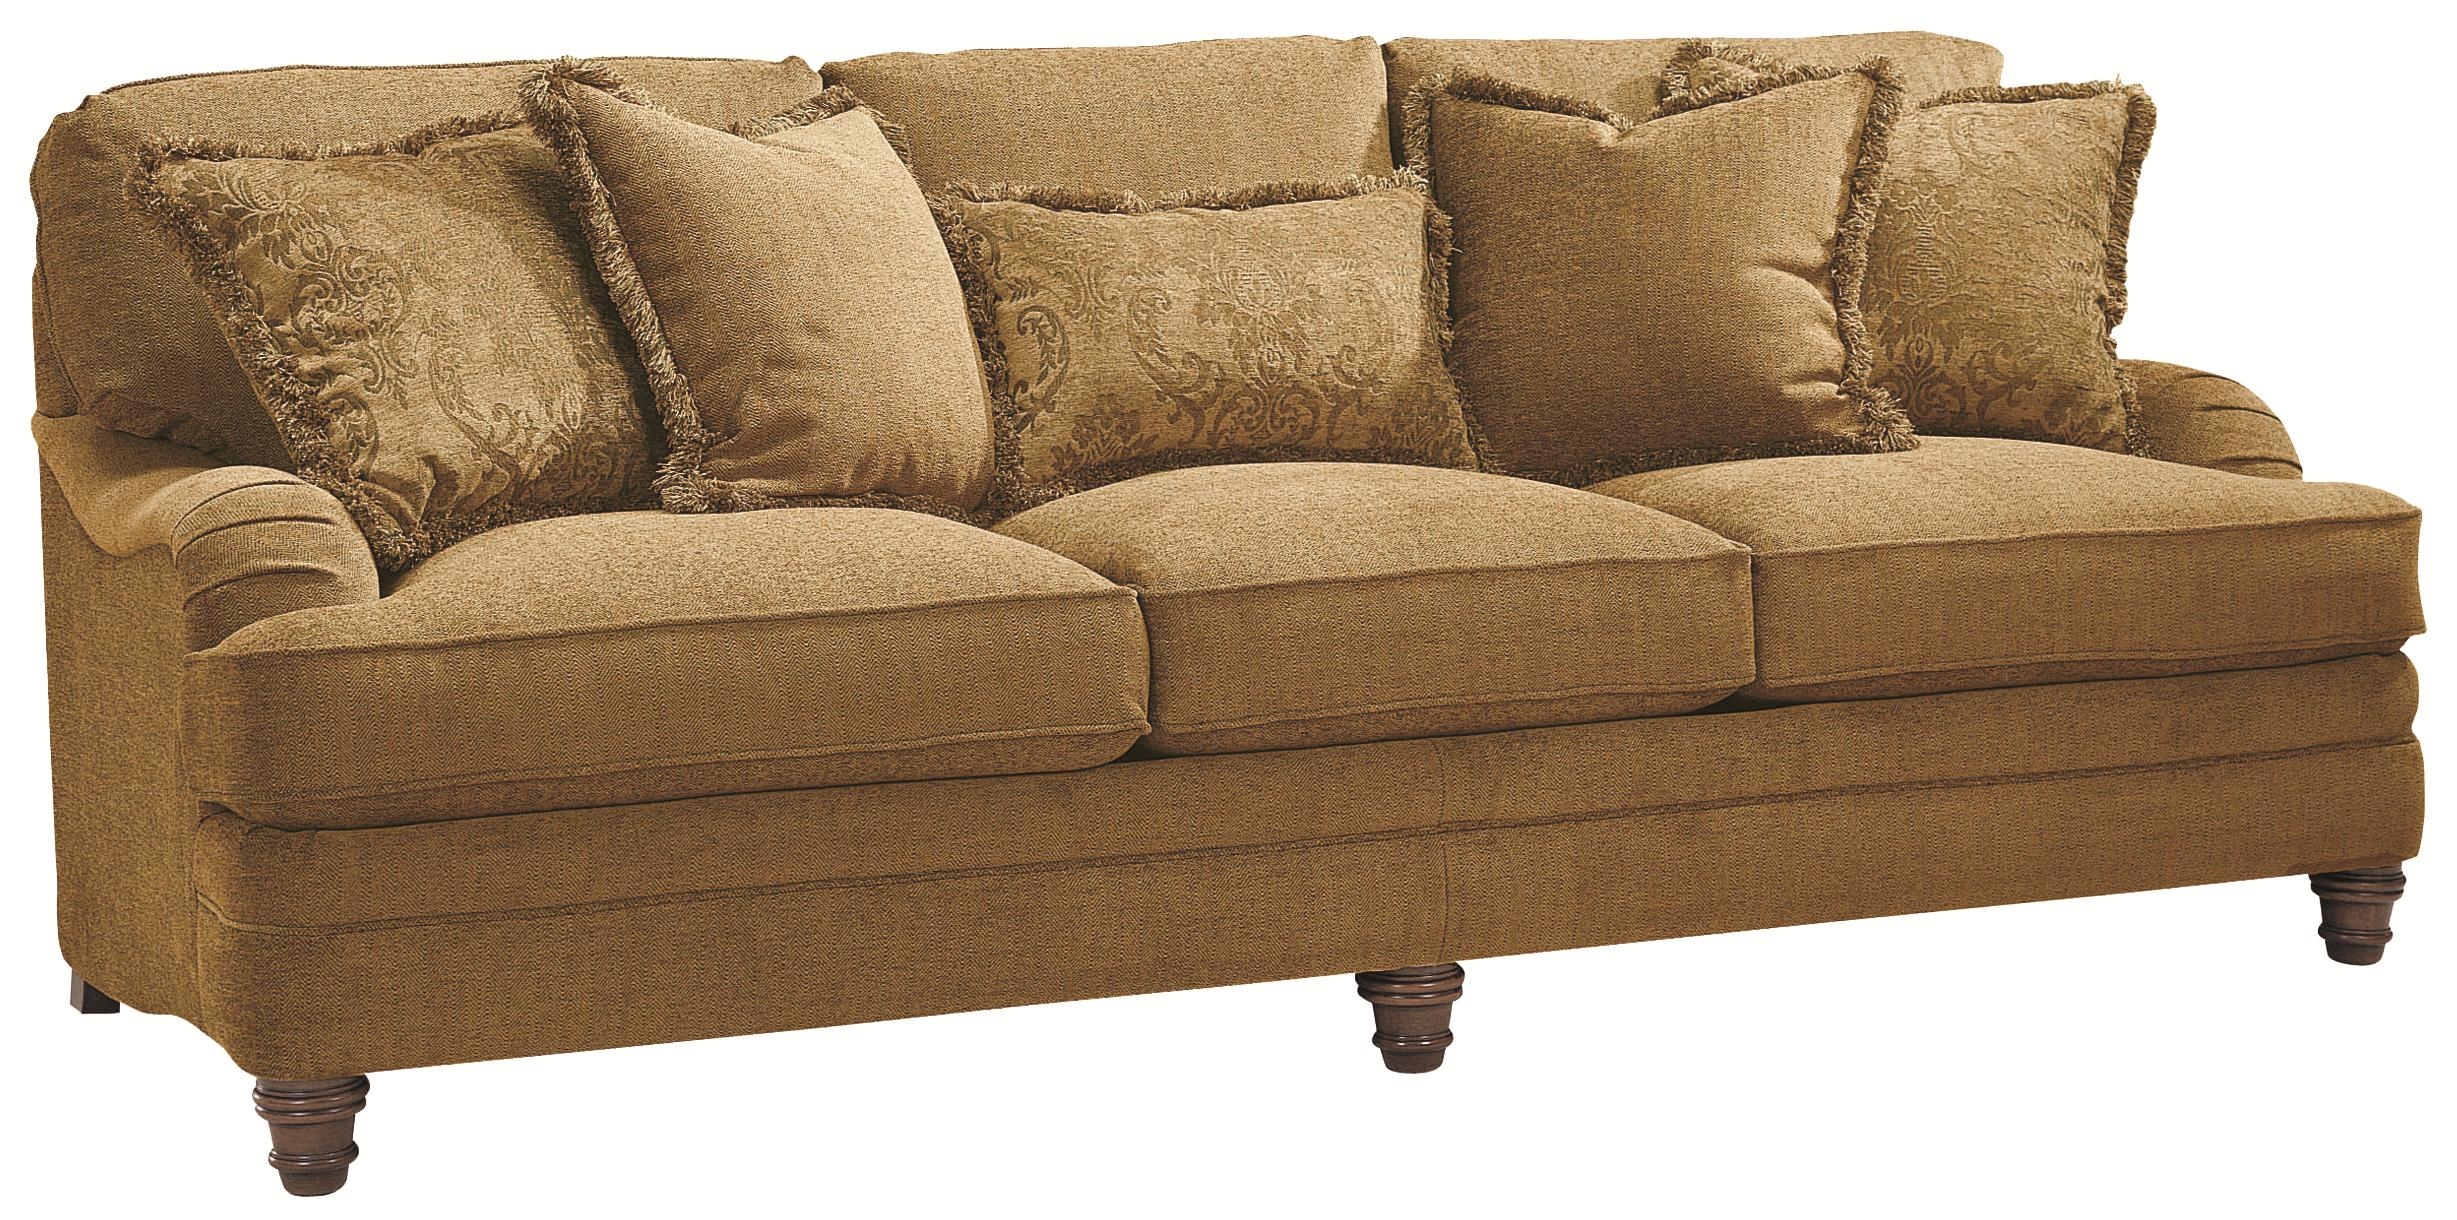 bernhardt vincent sofa reviews repair works in hyderabad leather price foster 2 piece ...